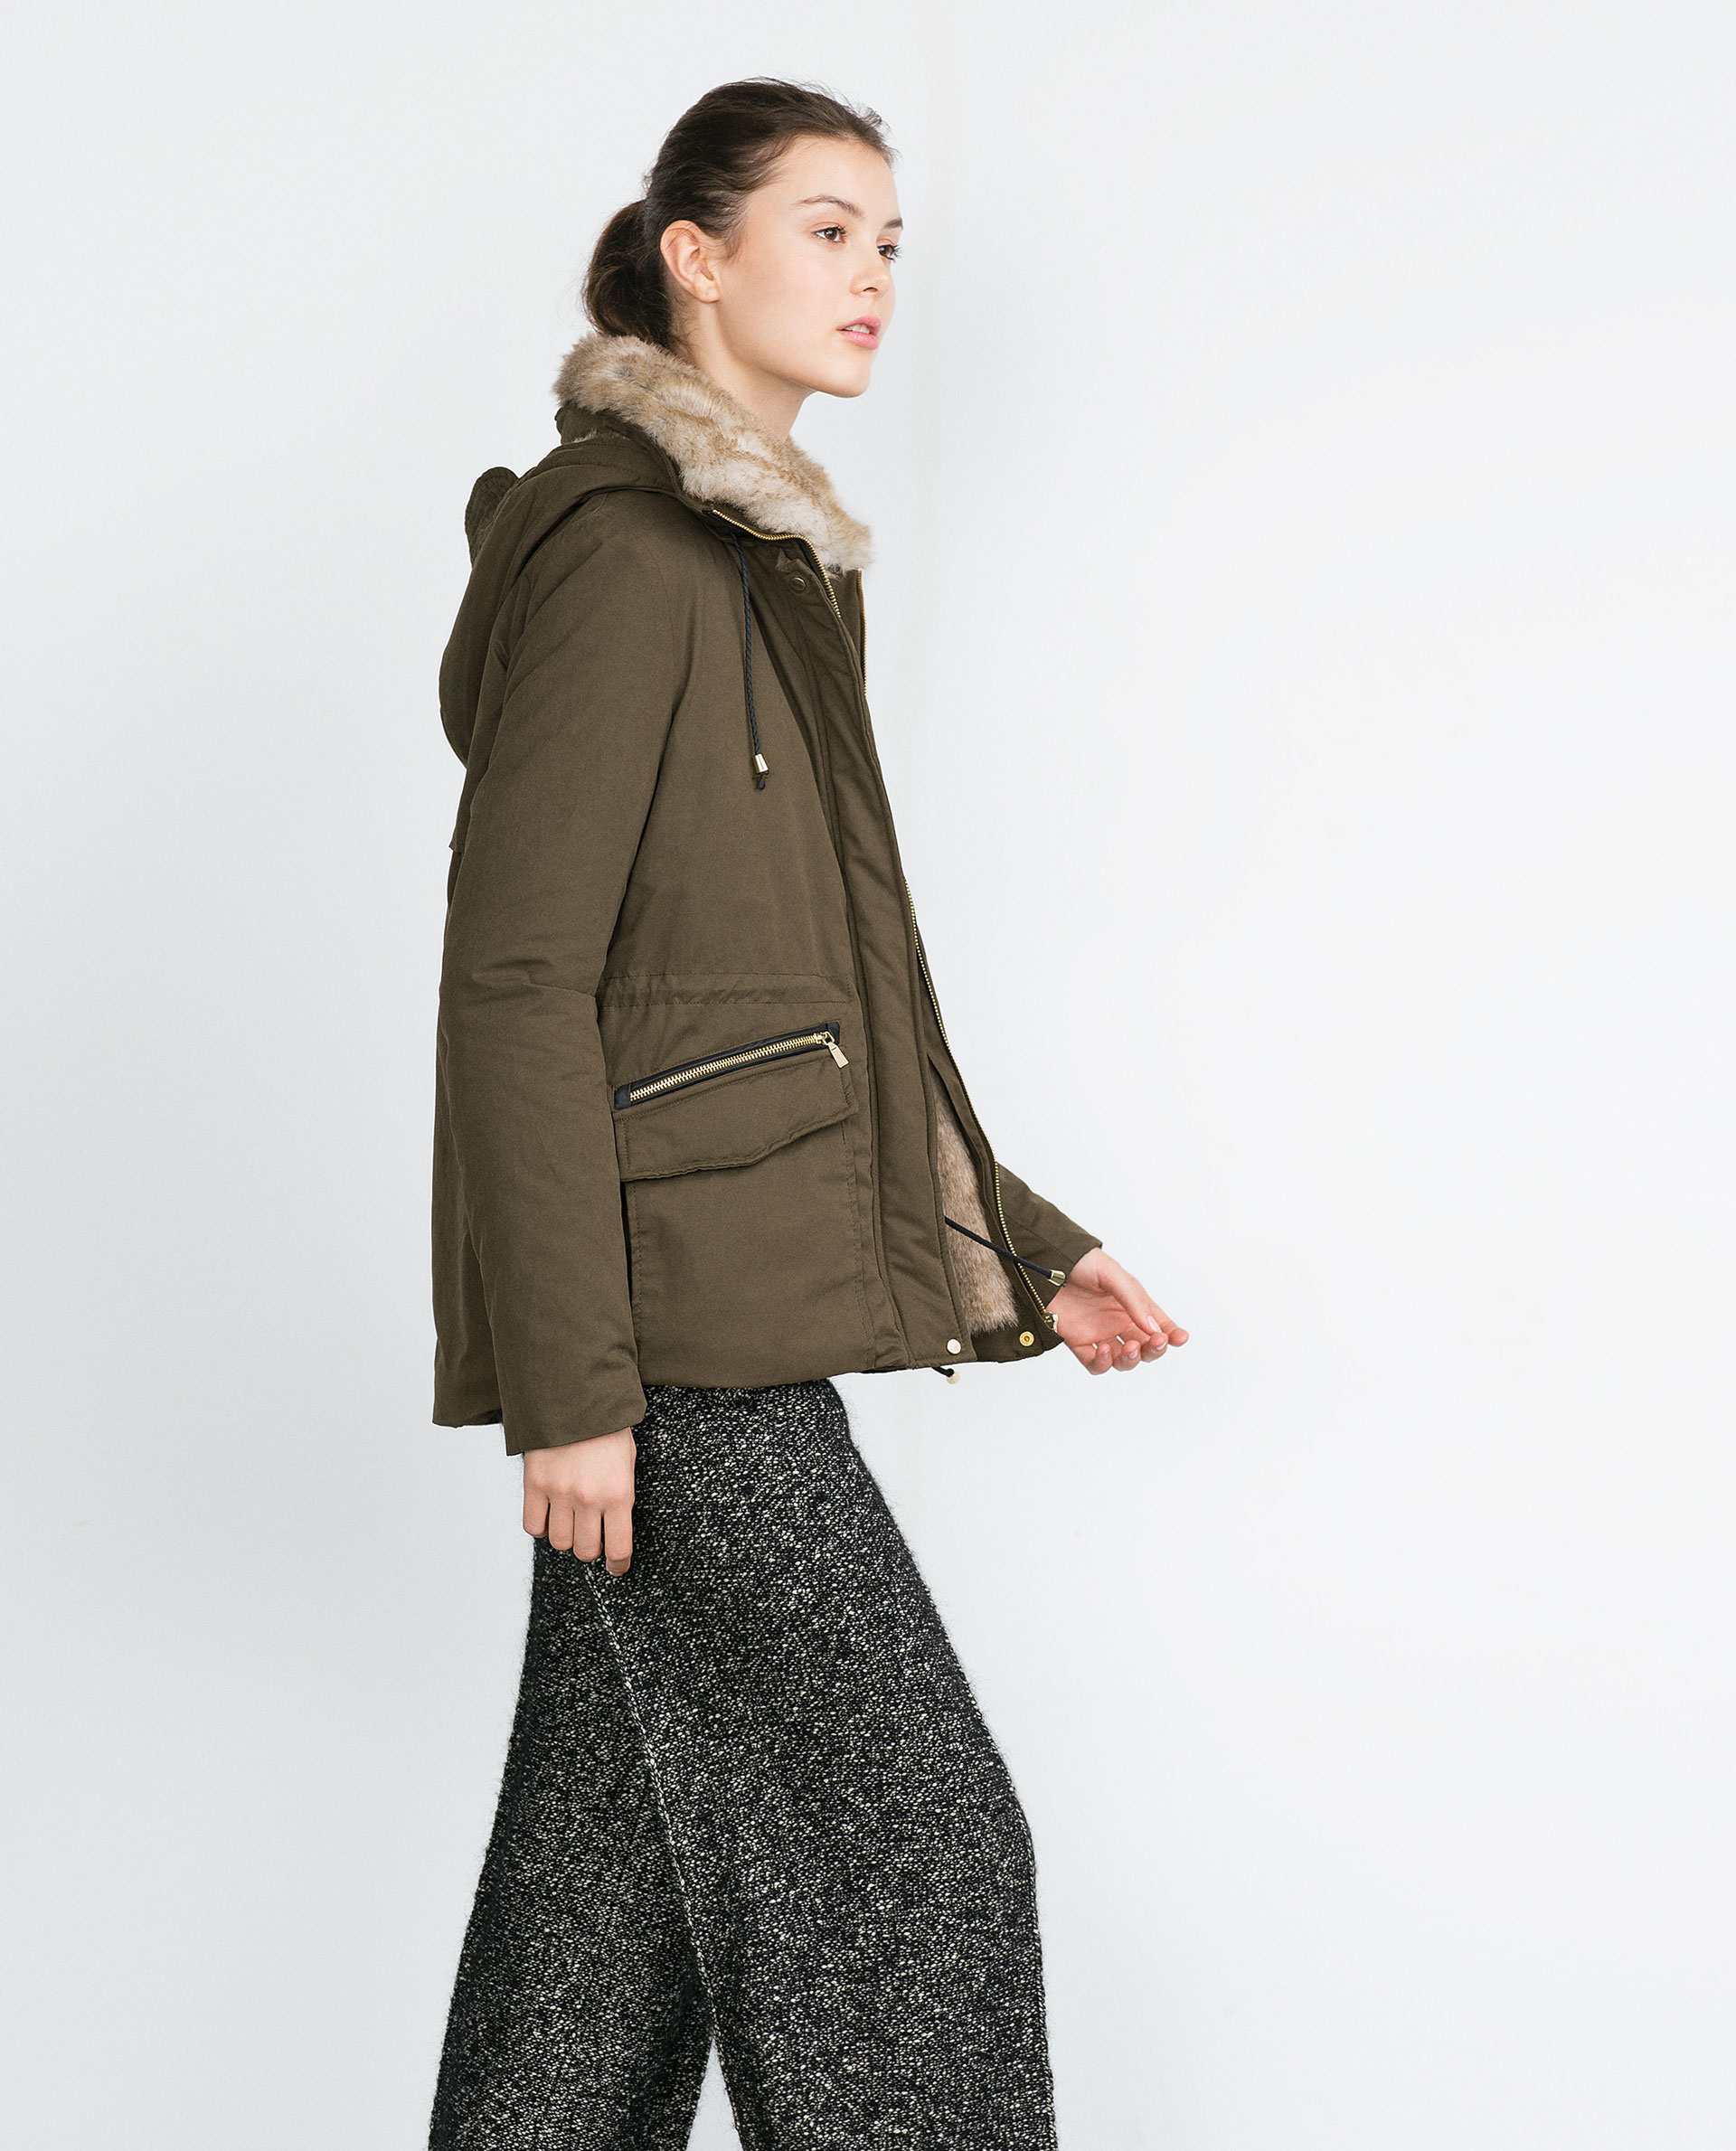 Short Faux Fur Coat Zara - Tradingbasis